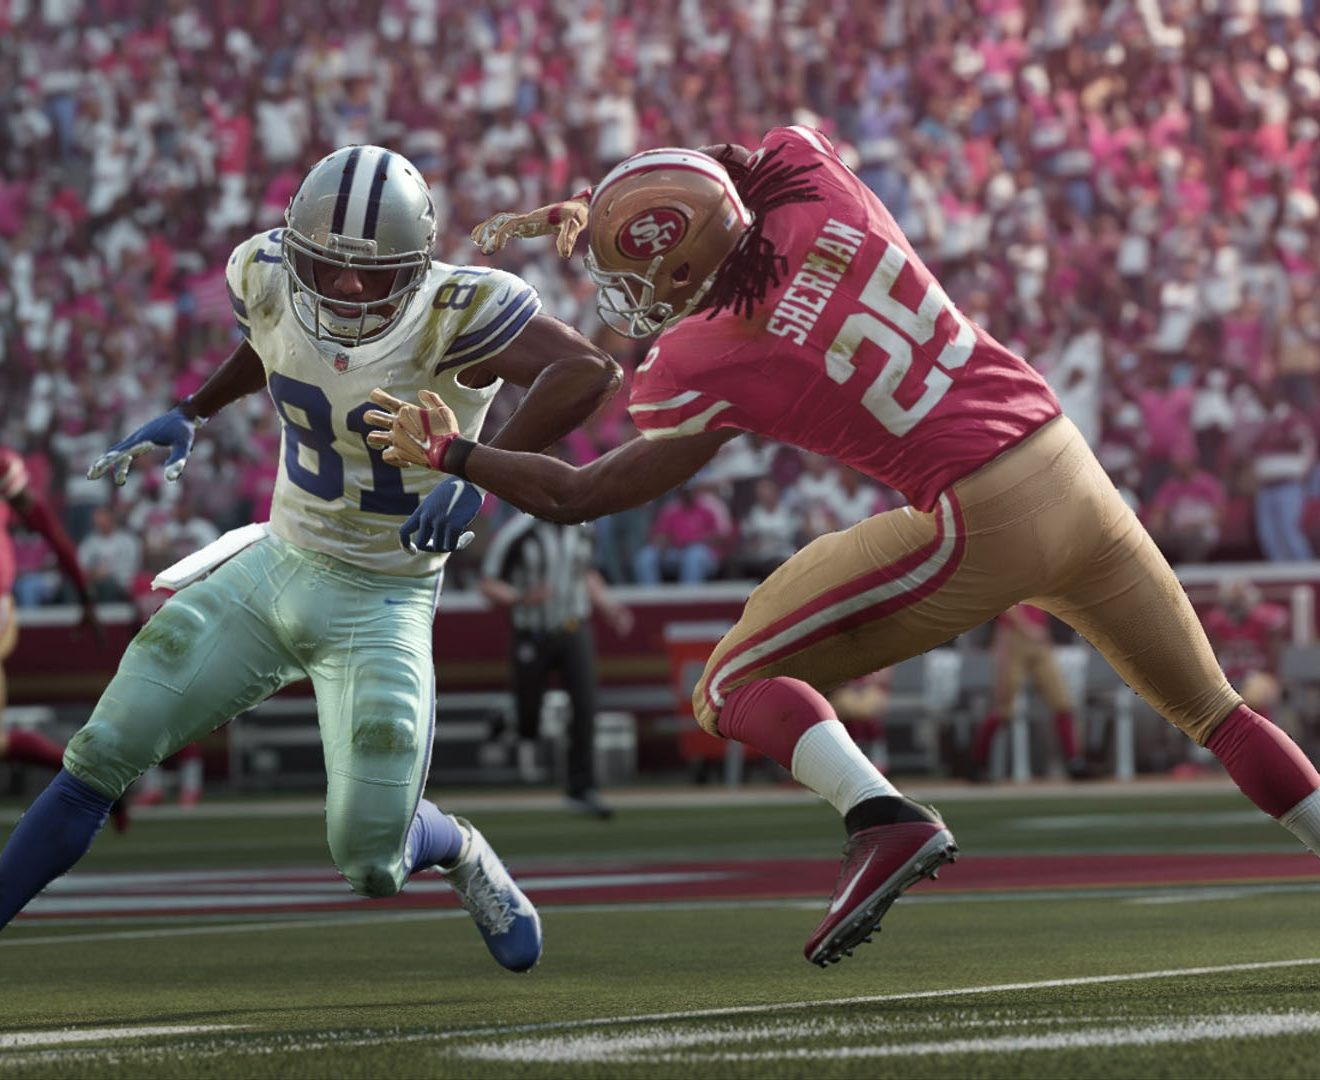 Madden19 gdp screenshot legends to vs sherman 1p e1604400403677 Video Game Urban Legends That'll Give You Nightmares